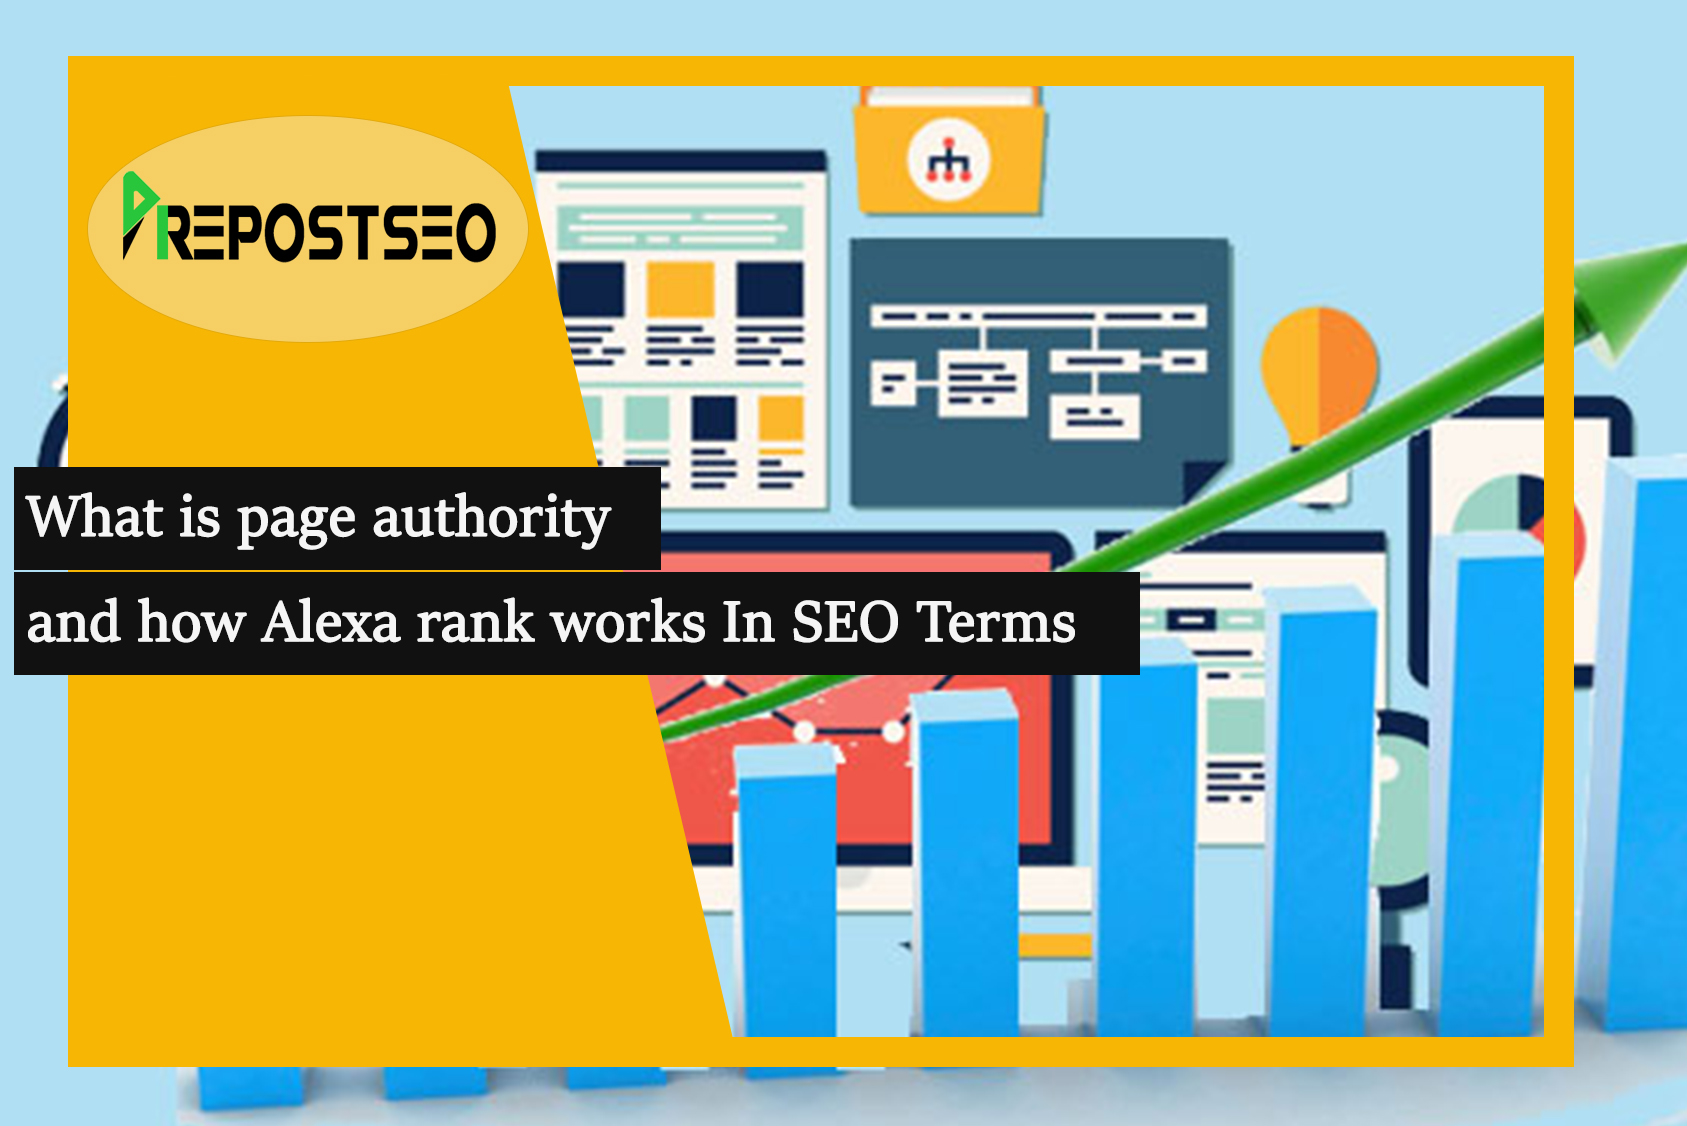 what-is-page-authority-and-how-alexa-rank-works-in-seo-terms